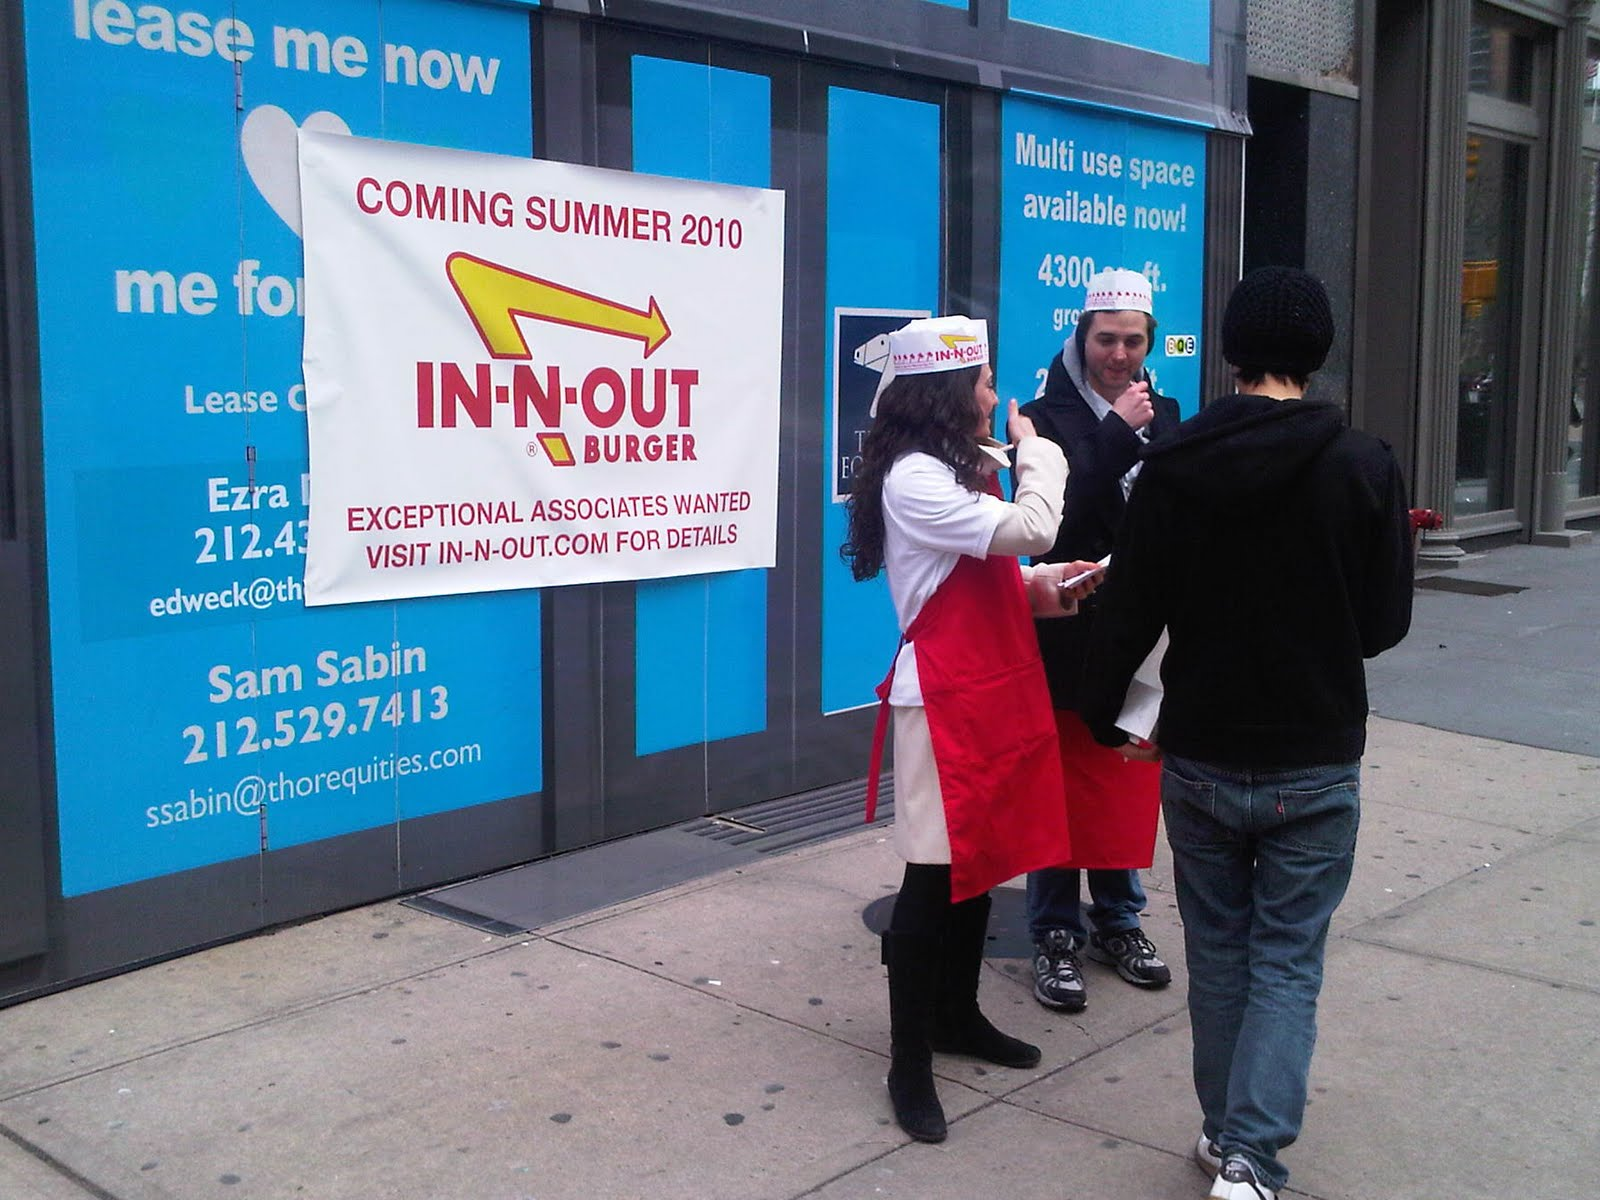 The Wine Commonsewer™: In-N-Out Burger Coming to New York City